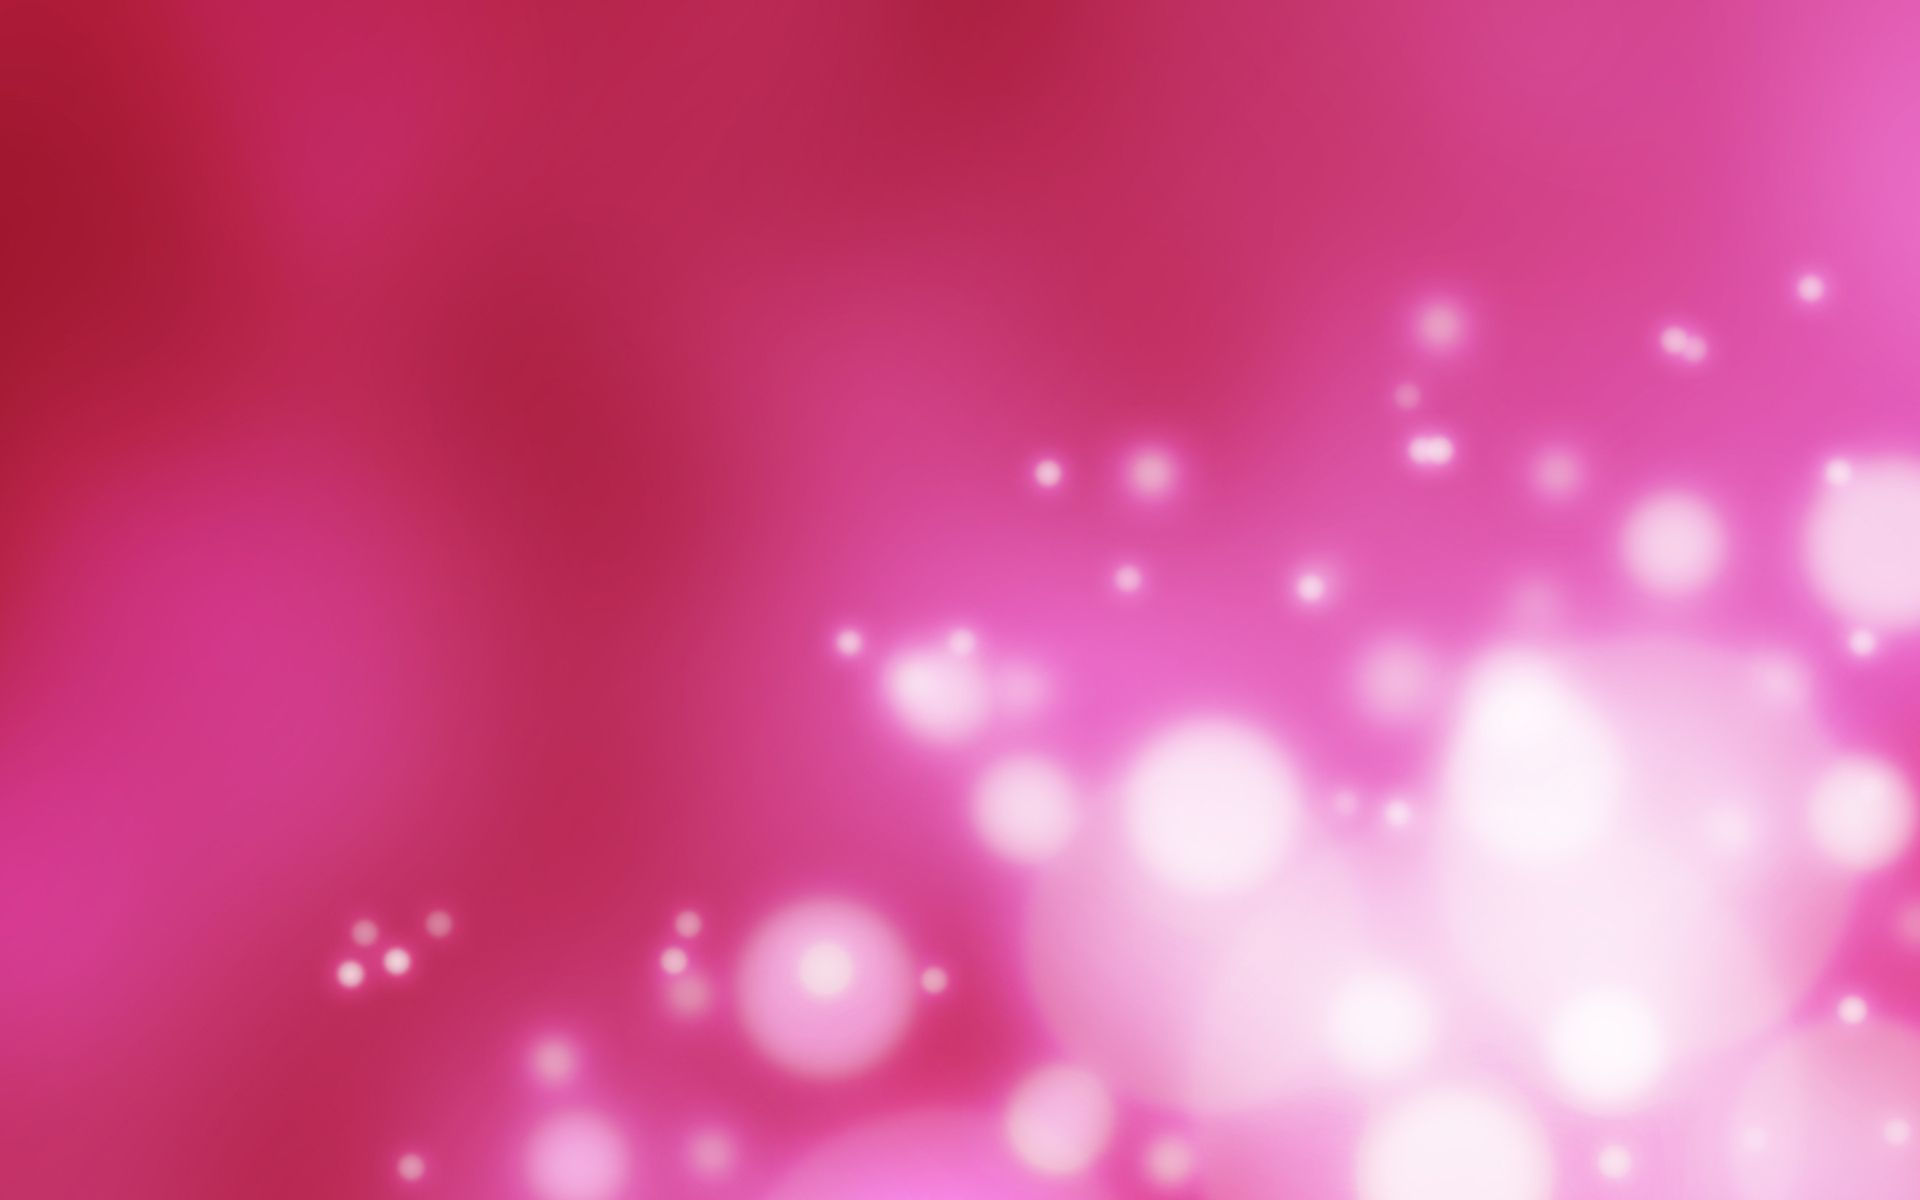 Wallpaper Abstract Wallpaper Red Pink Background Wallpaper Background 1920x1200